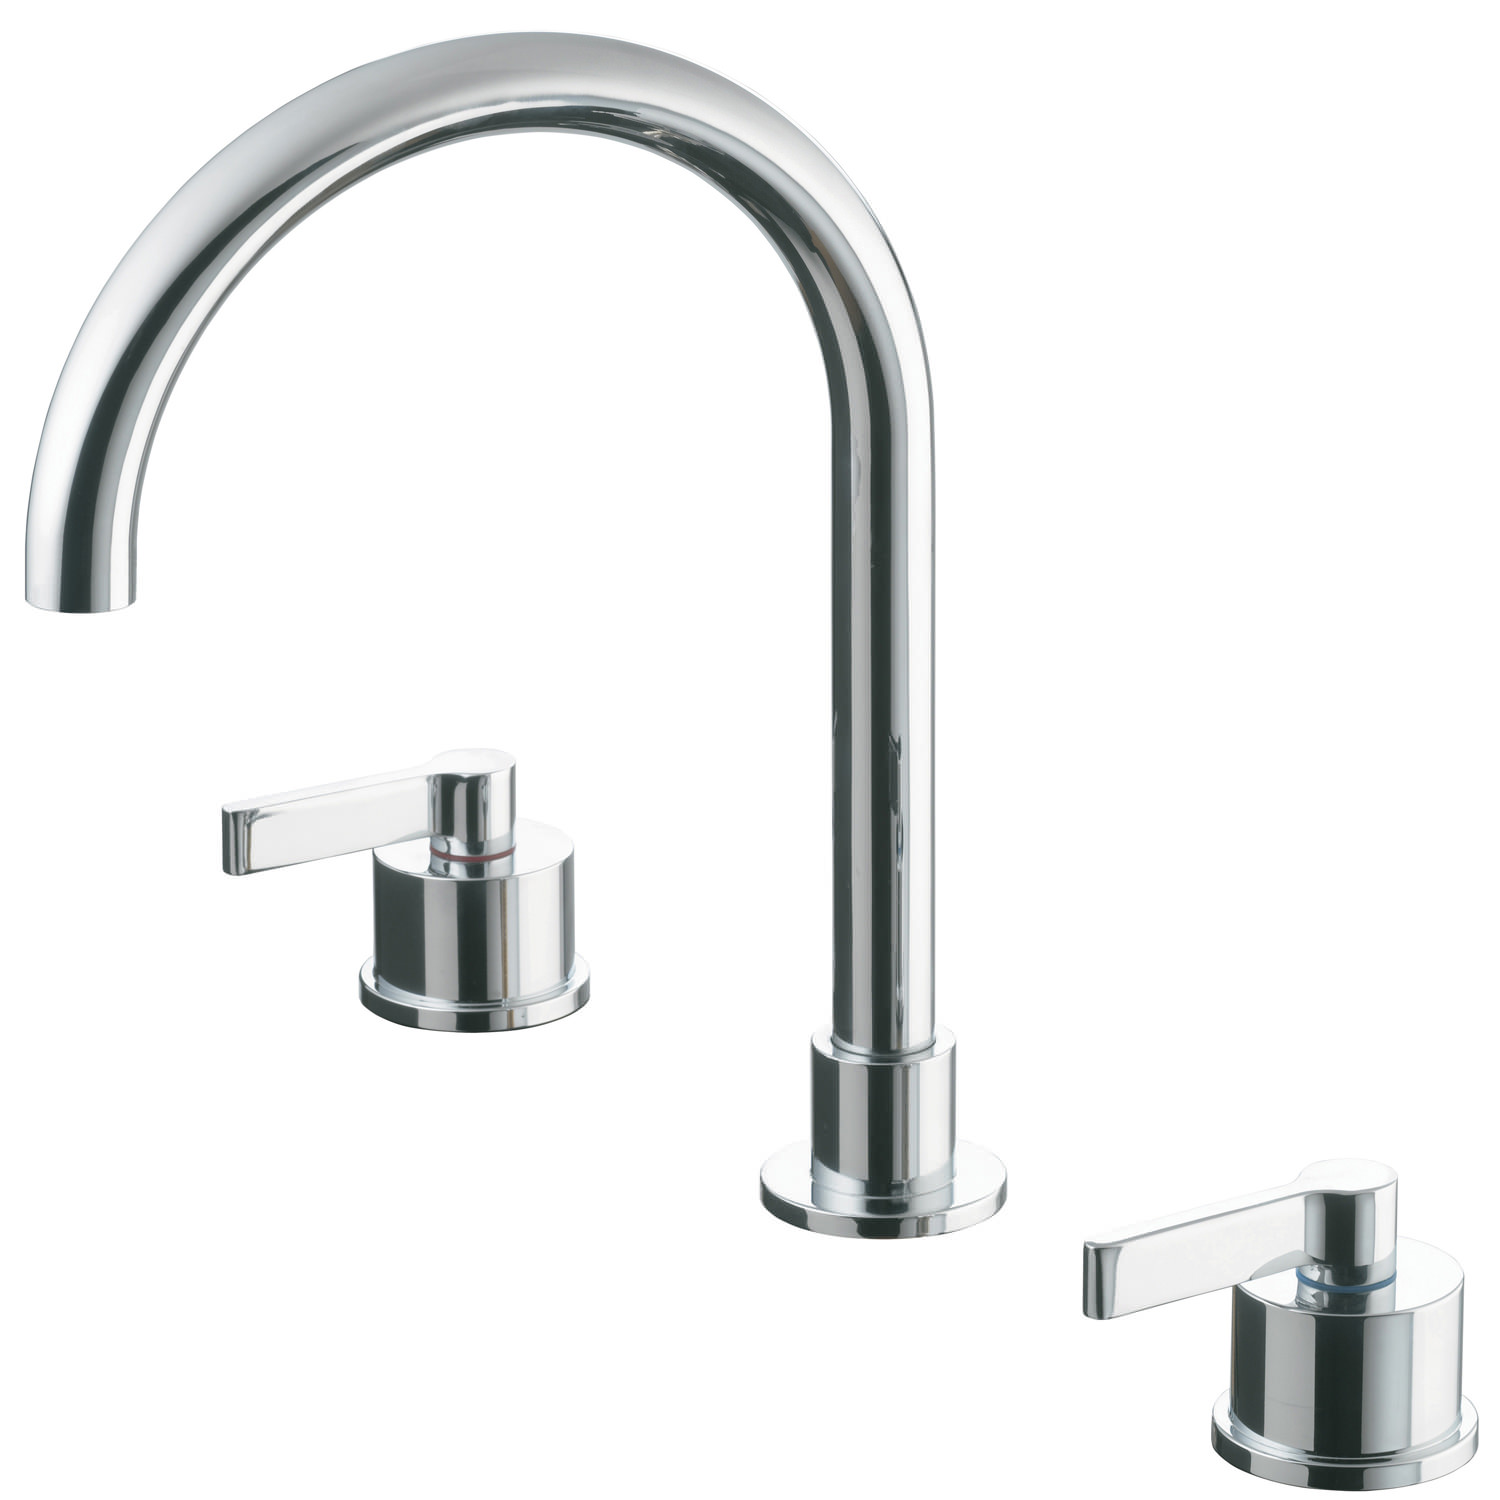 Ideal Standard Silver 3 Hole Basin Mixer Tap Without Waste